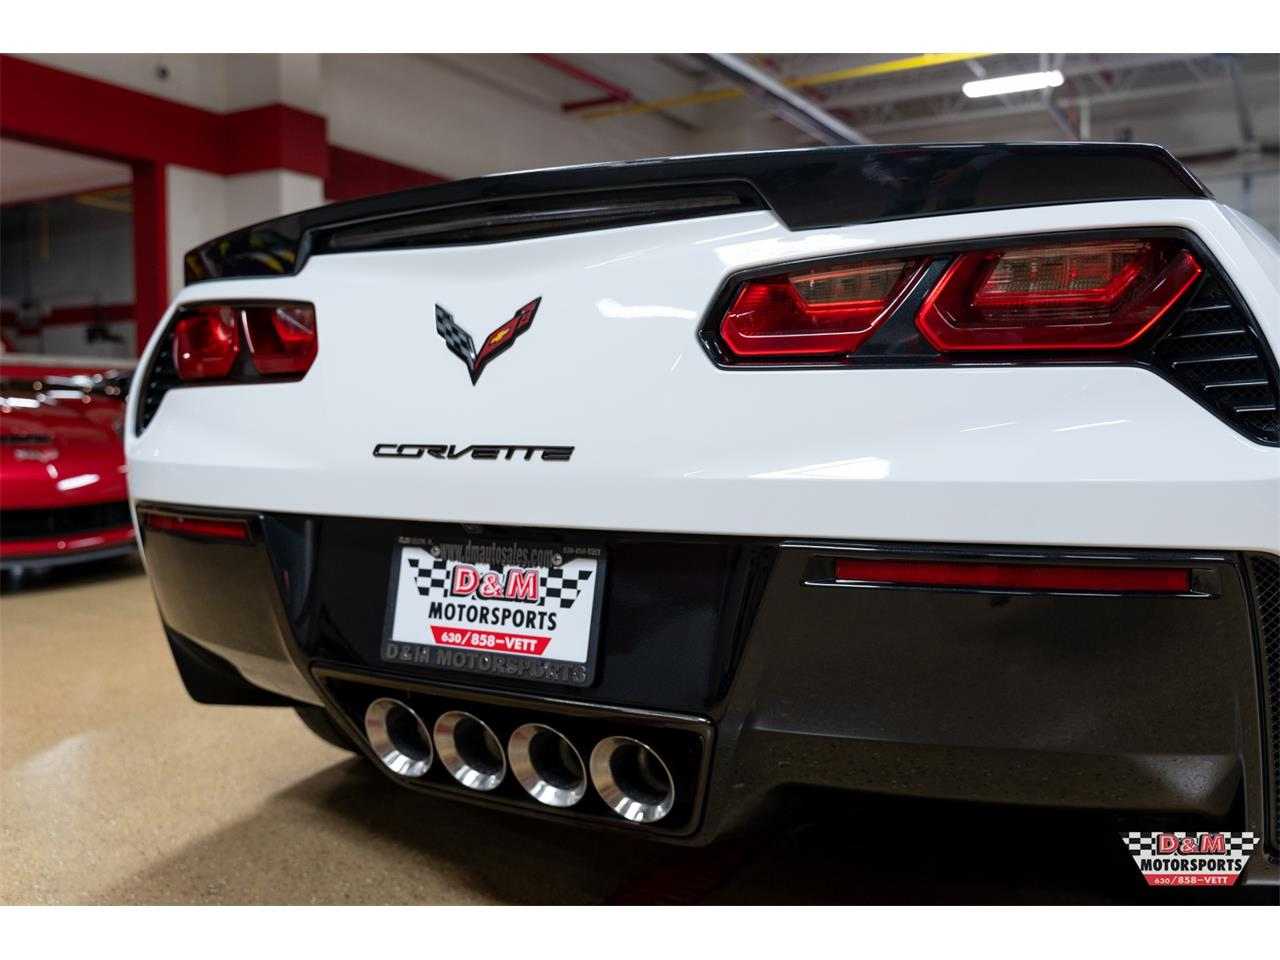 Large Picture of '16 Corvette located in Illinois Offered by D & M Motorsports - R2HE